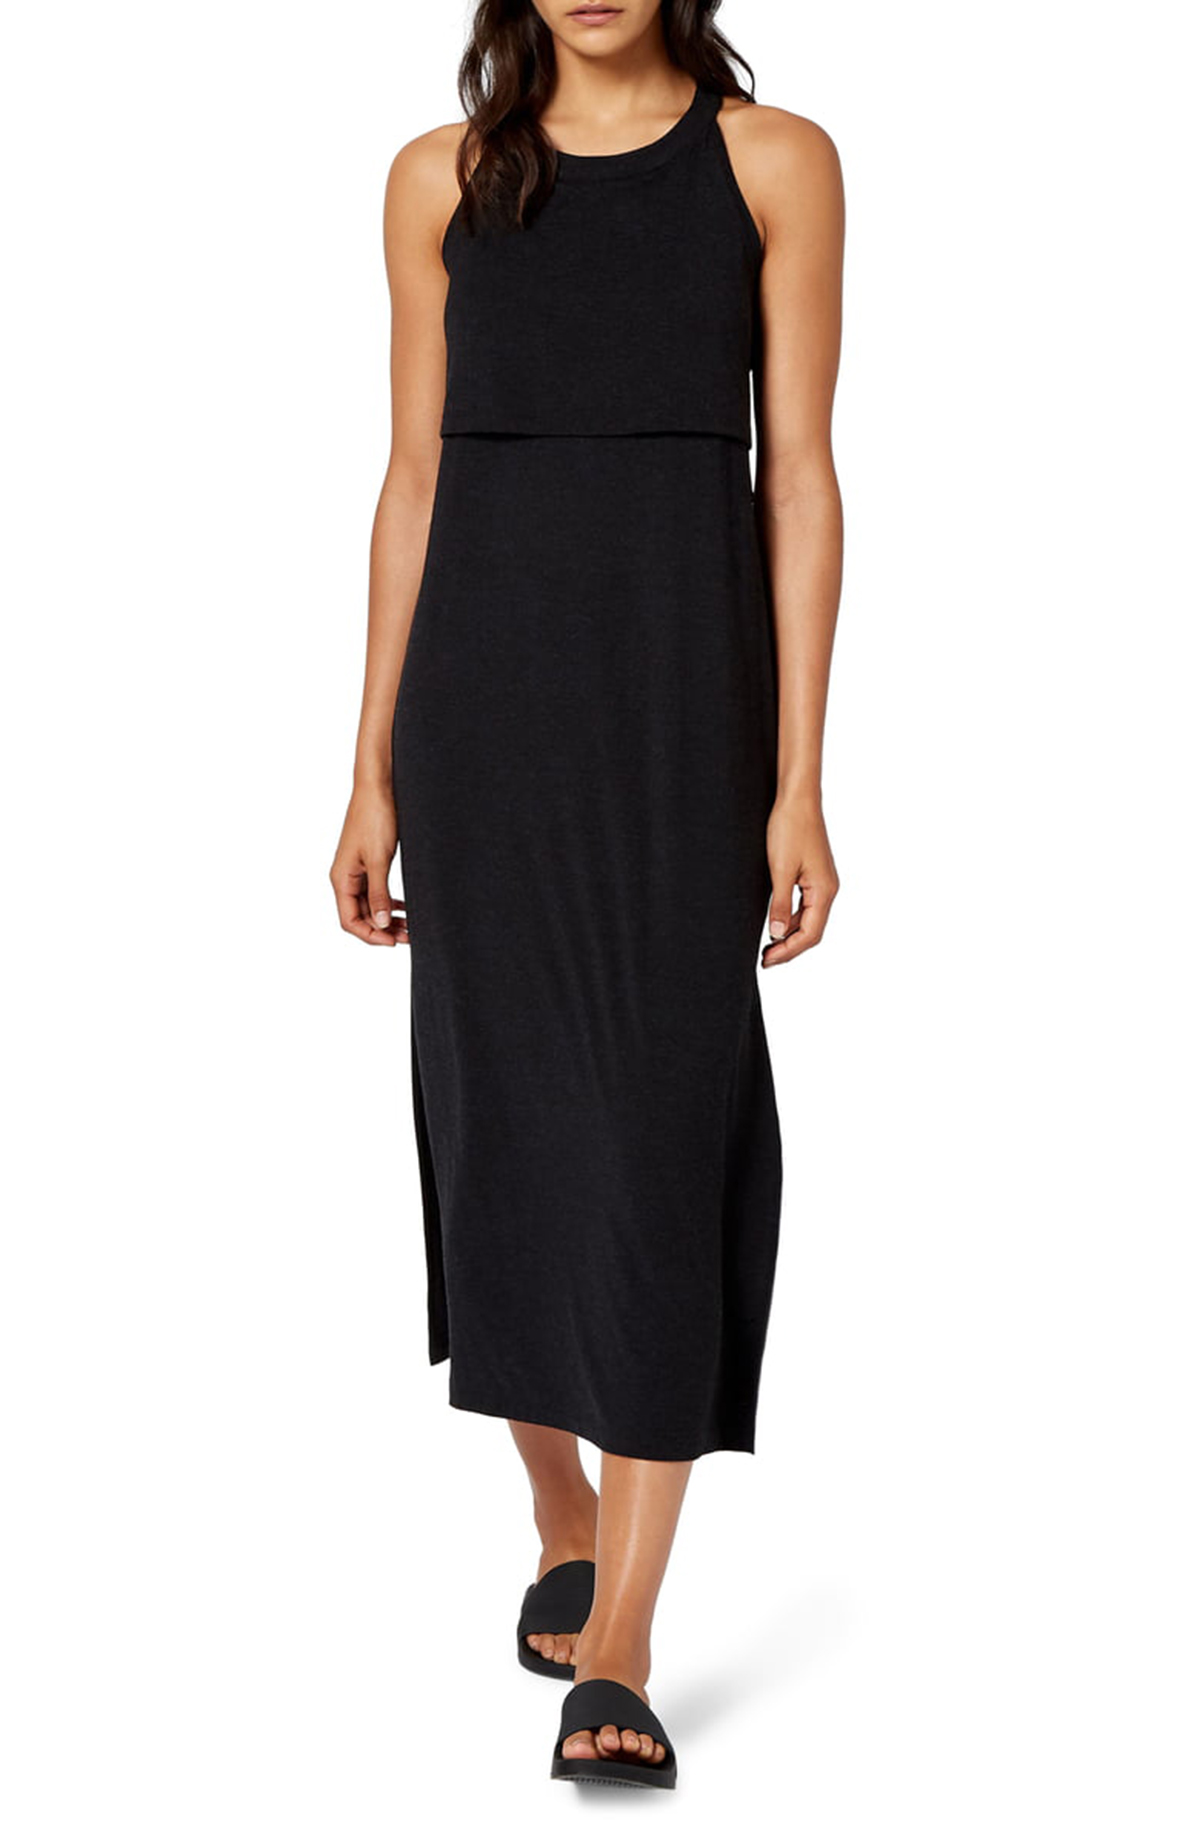 This Black Dress Masters the Art of Comfortable and Chic All at Once